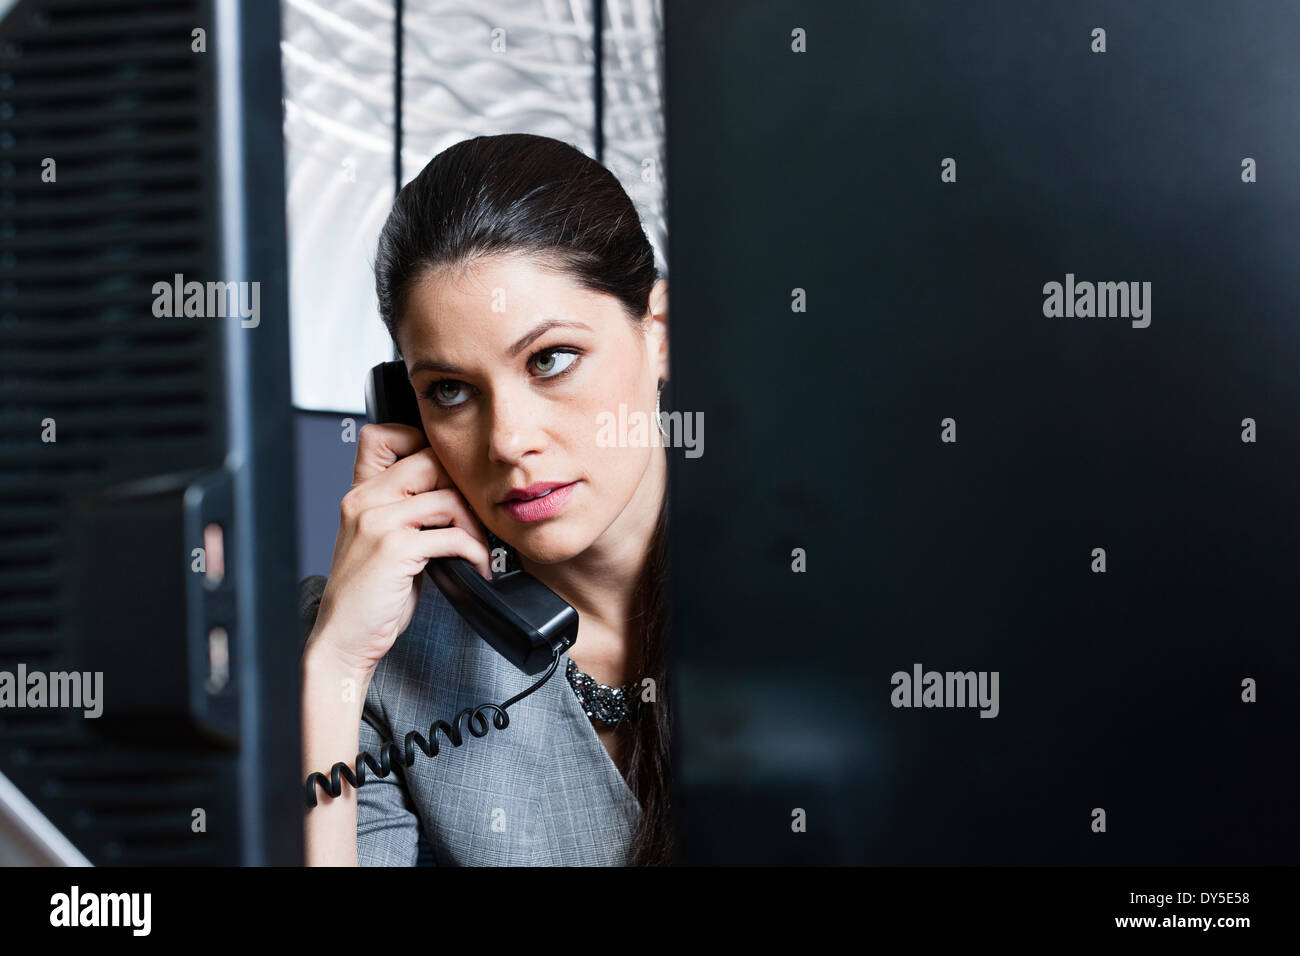 Young businesswoman on telephone call - Stock Image